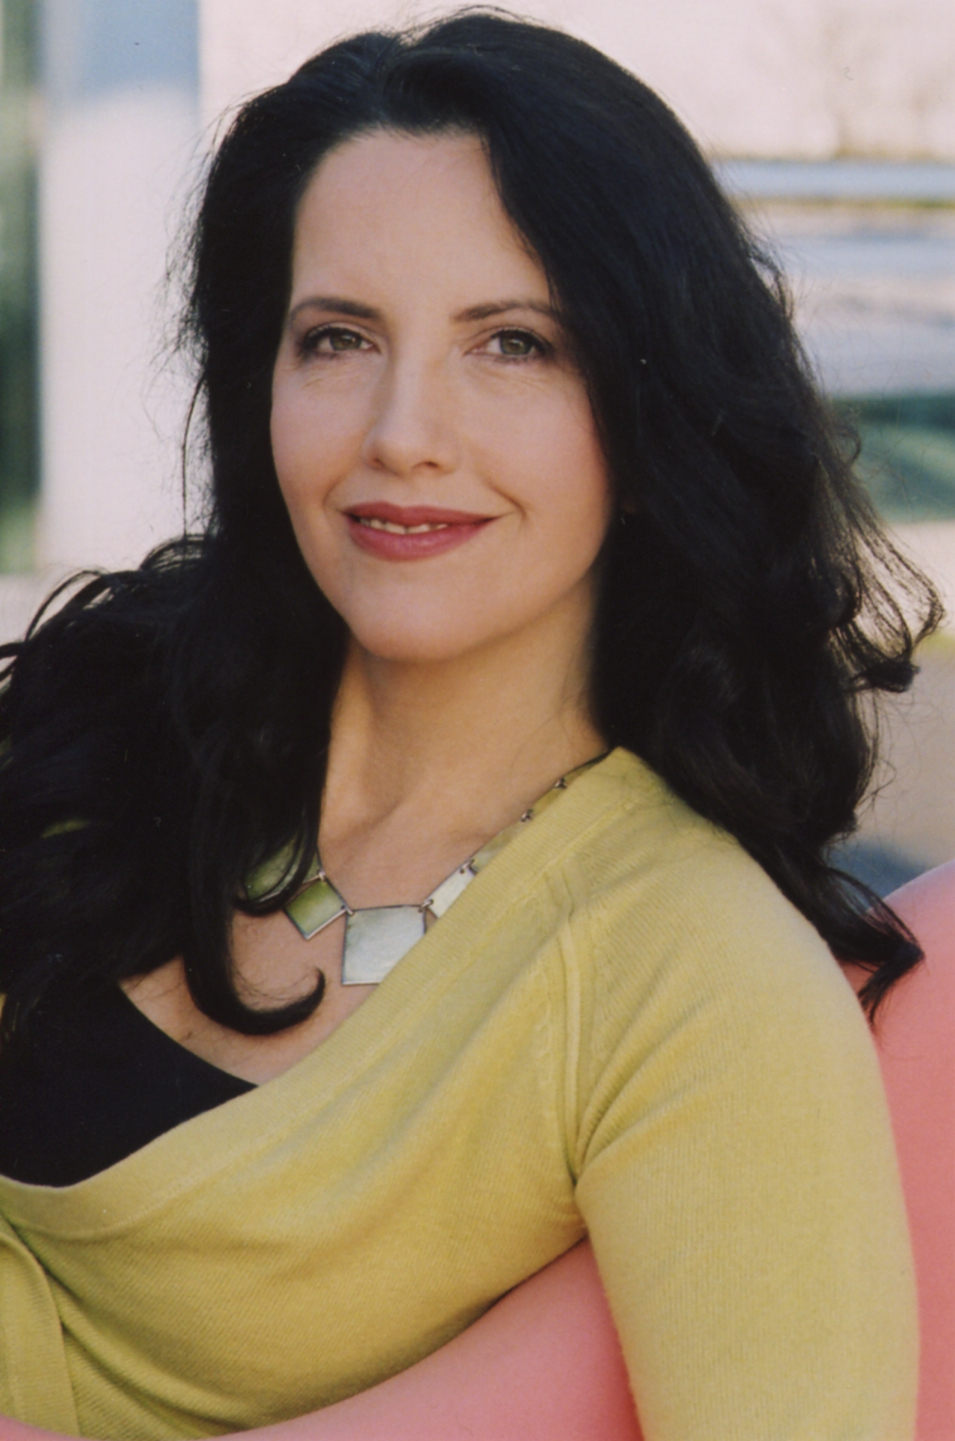 https://upload.wikimedia.org/wikipedia/commons/7/73/NoraJensen.jpg